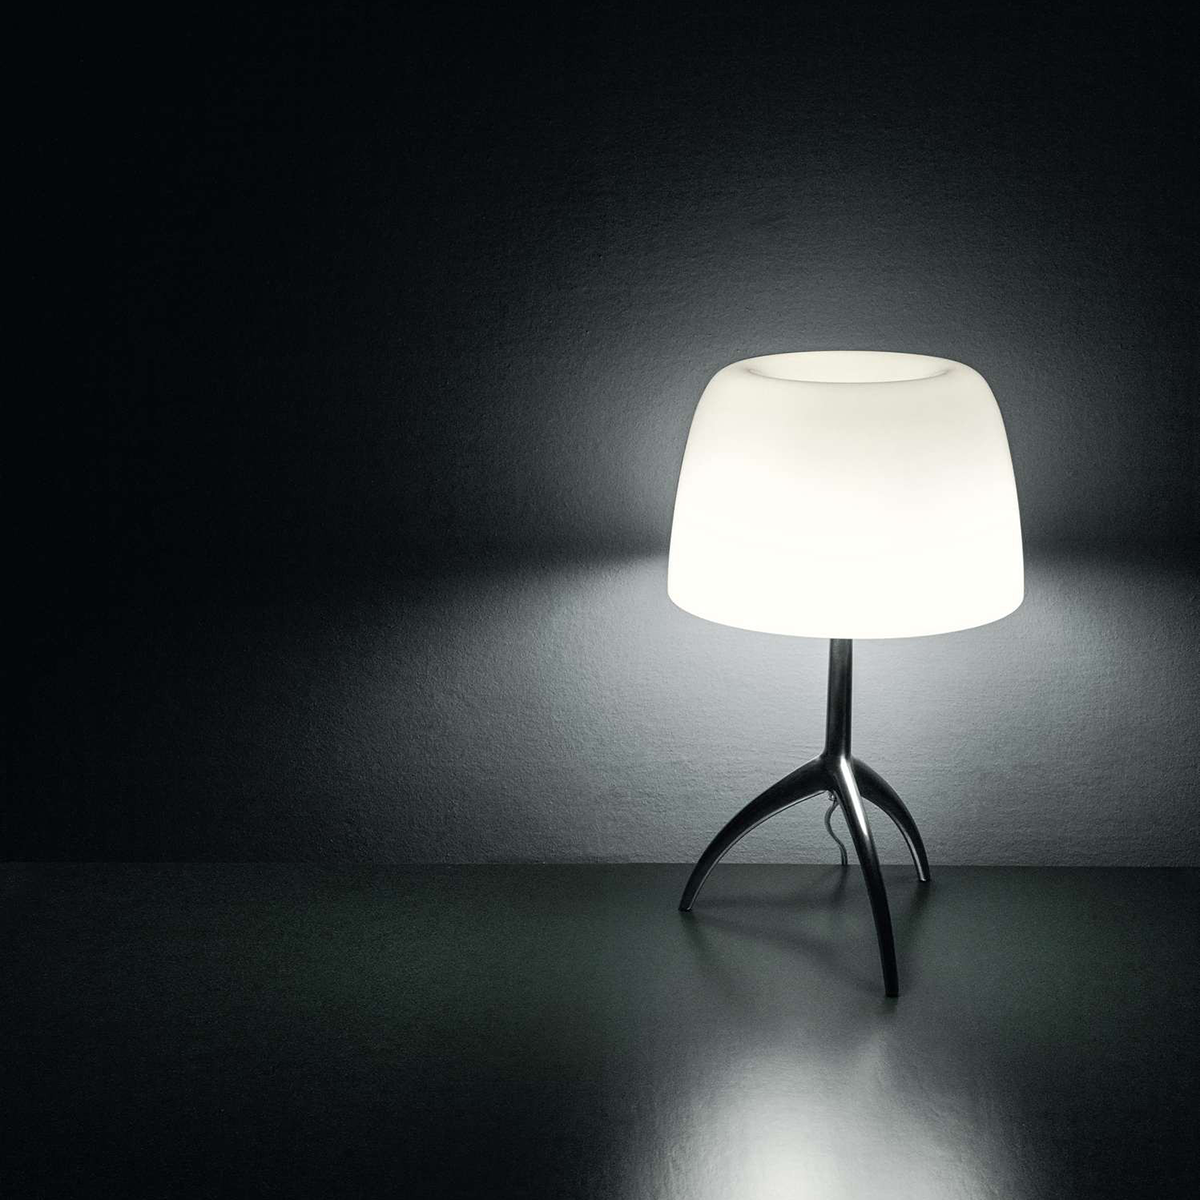 Foscarini Lumiere Grande Table Lamp 26cm 布丁系列 玻璃 桌燈 - 大尺寸